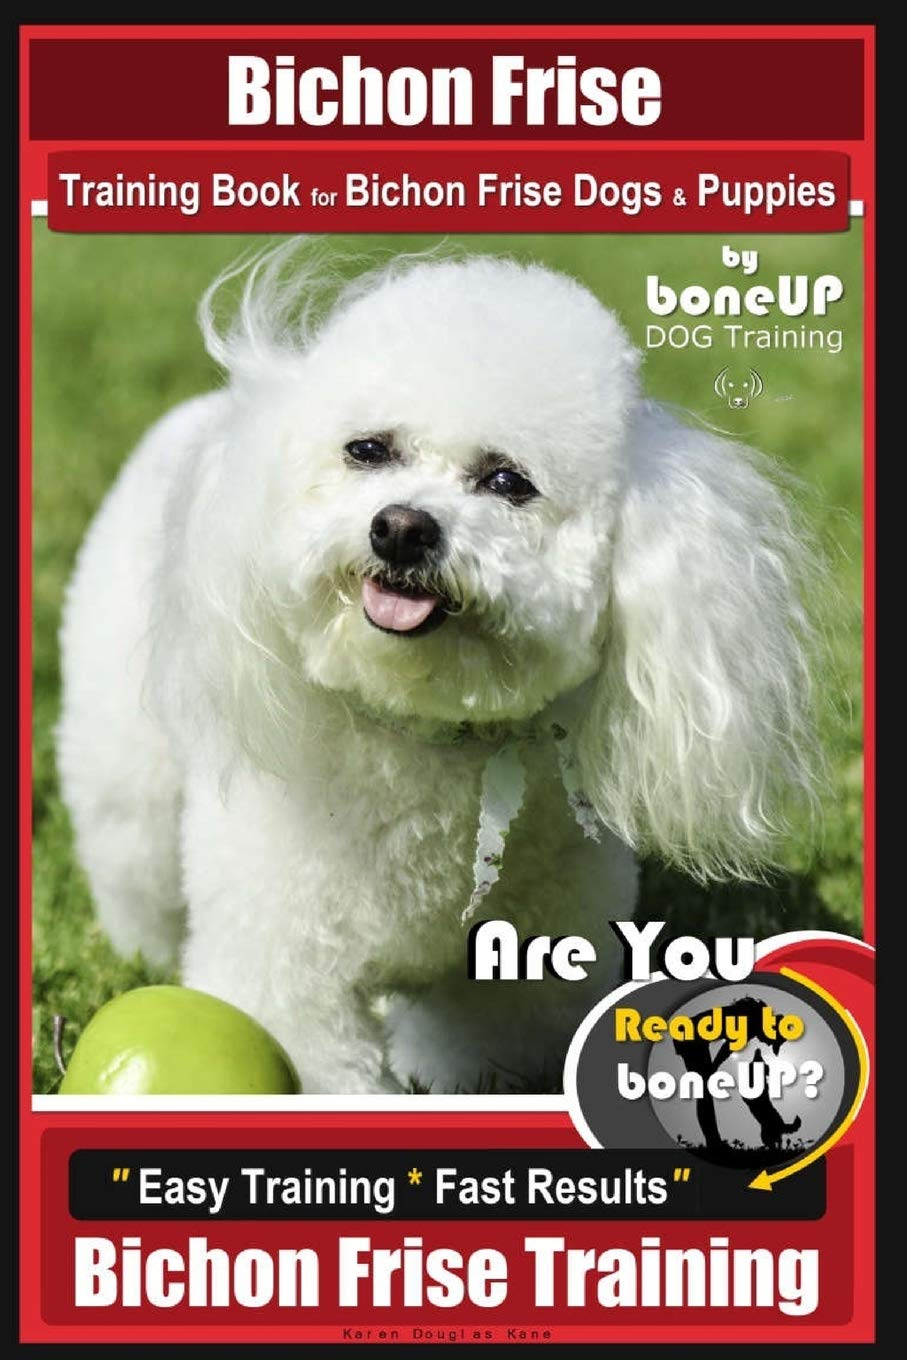 Bichon Frise Training Book for Bichon Frise Dogs & Puppies By BoneUP DOG Trainin: Are You Ready to Bone Up? Easy Training * Fast Results Bichon Frise Training